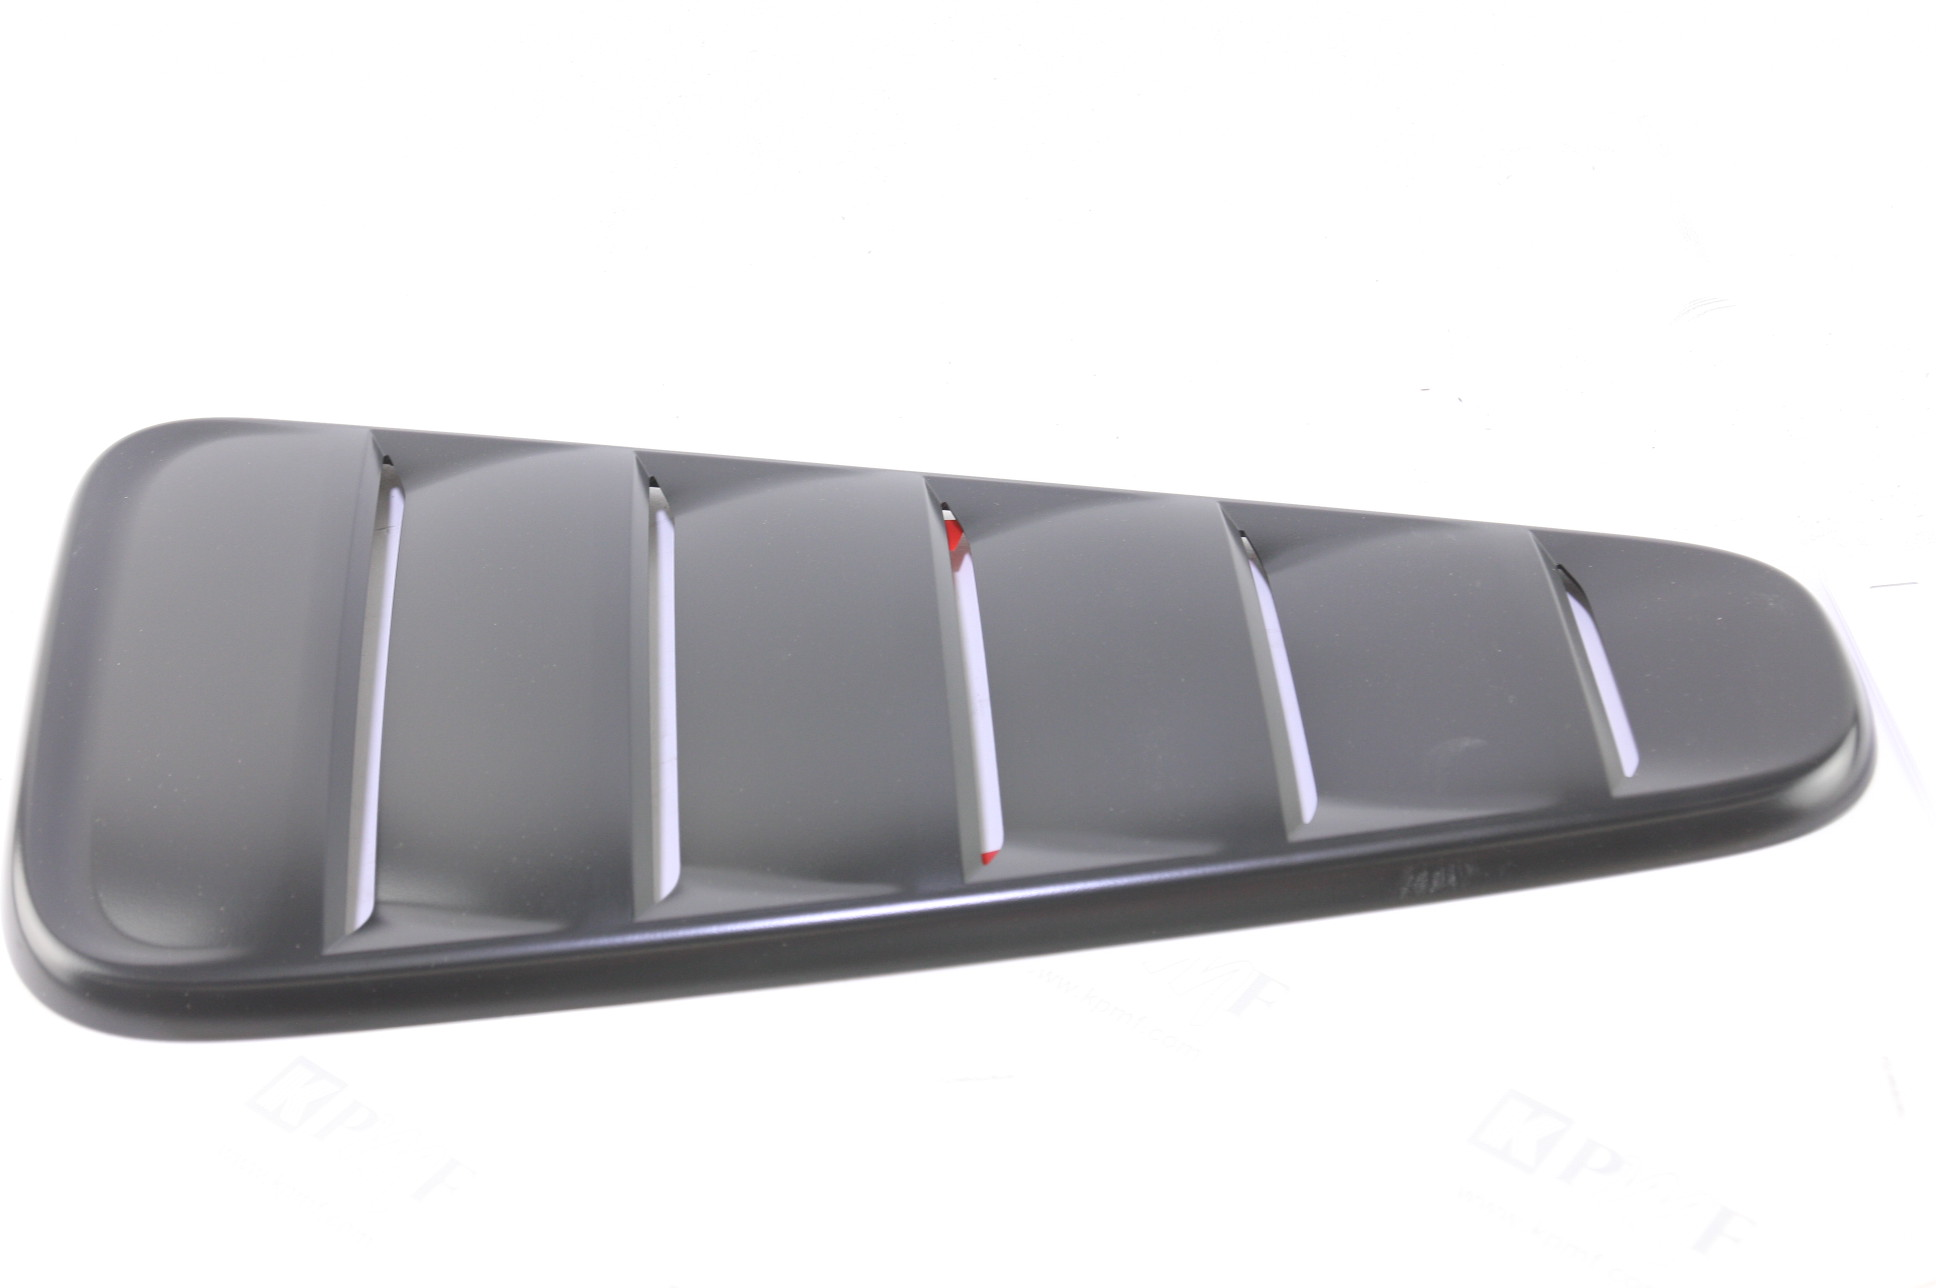 *** New OEM AR3Z63280B10AA 10-14 Mustang Louver Vent Right Primer Free Shipping - image 1